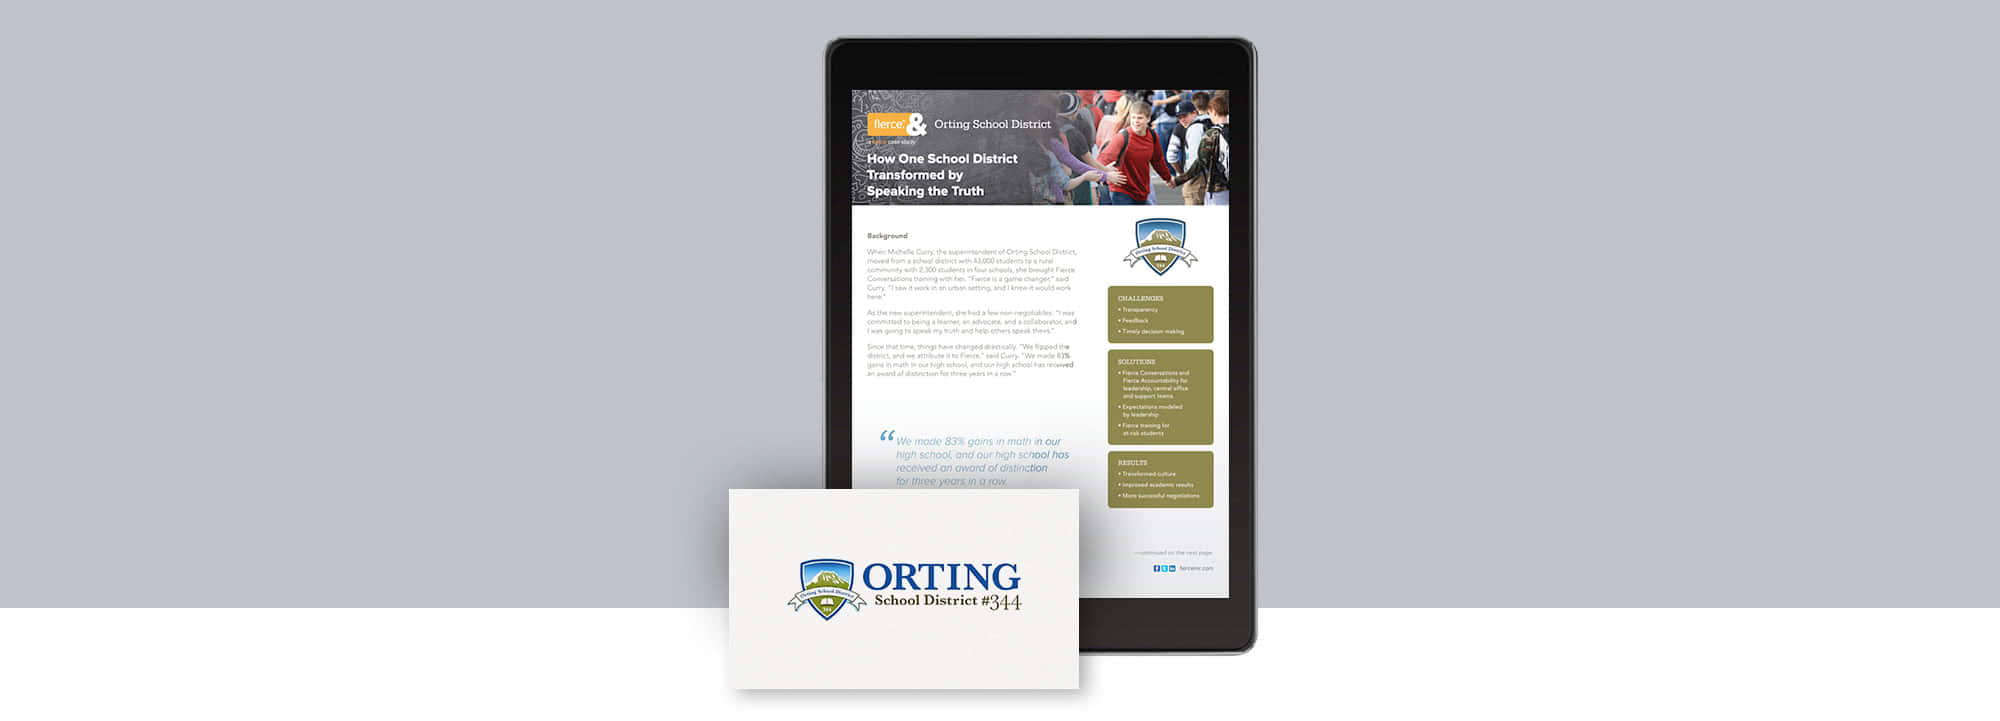 Fierce Conversations Orting School District Case Study